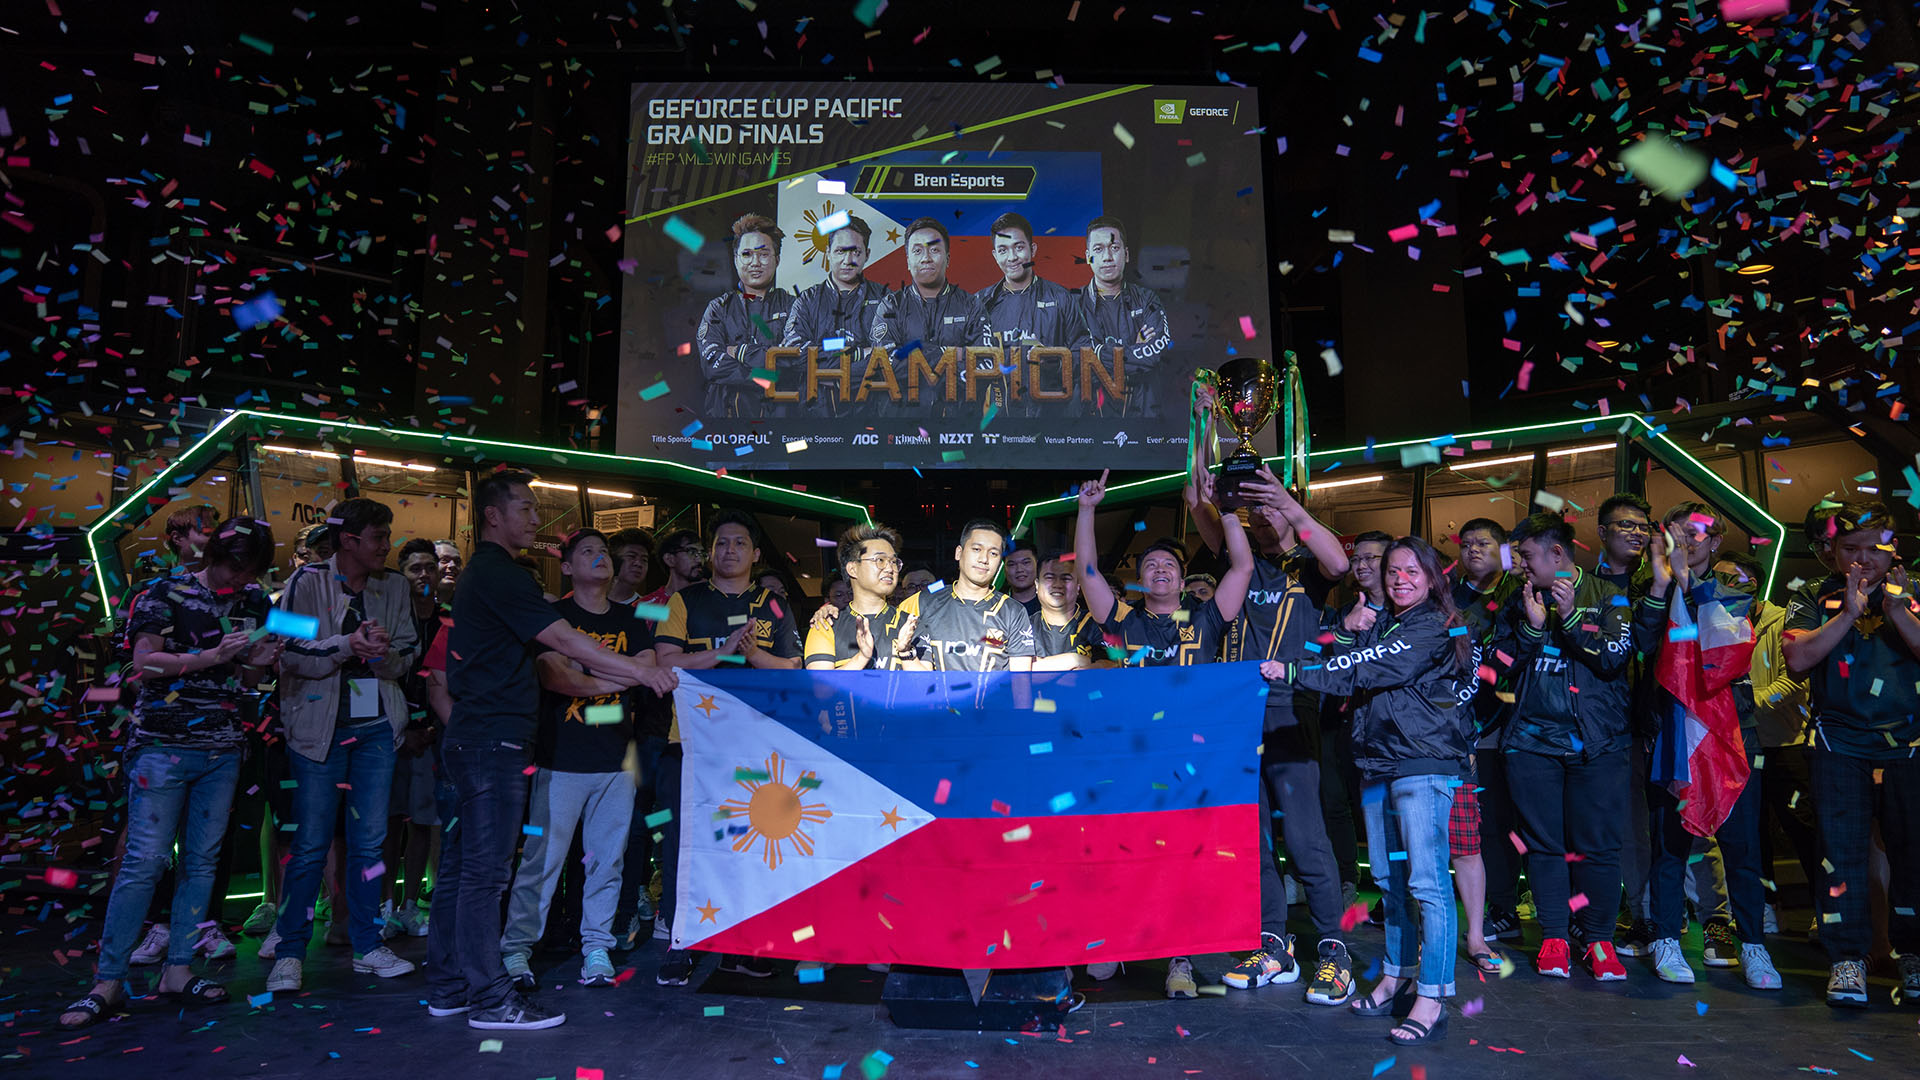 Team Philippines Is The Champion Of Nvidia Geforce Cup Pacific Grand Finals